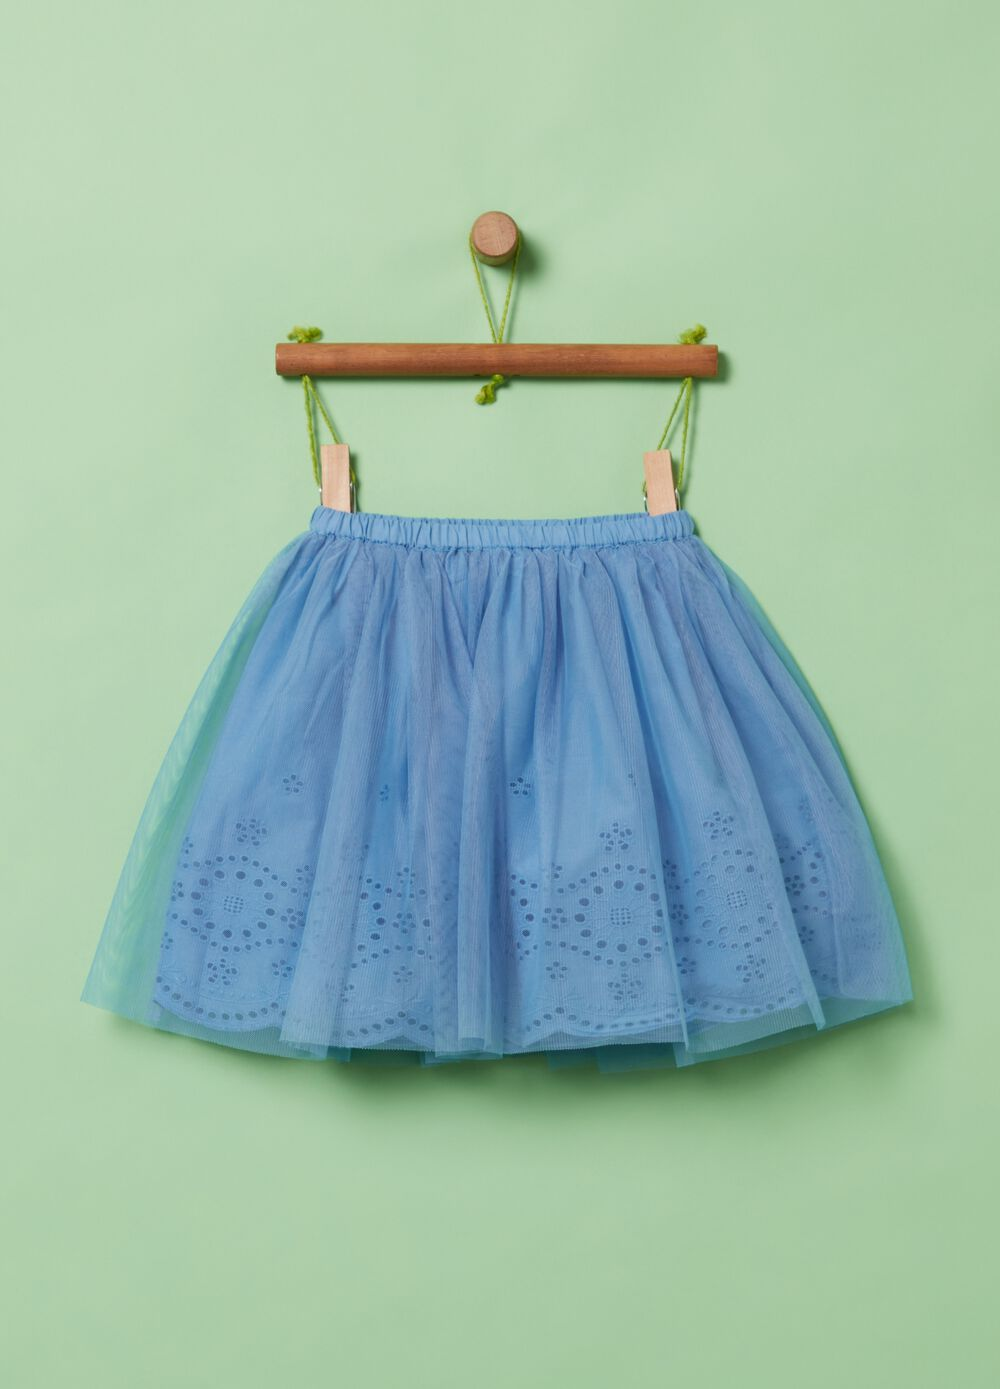 Short skirt with broderie anglaise lace